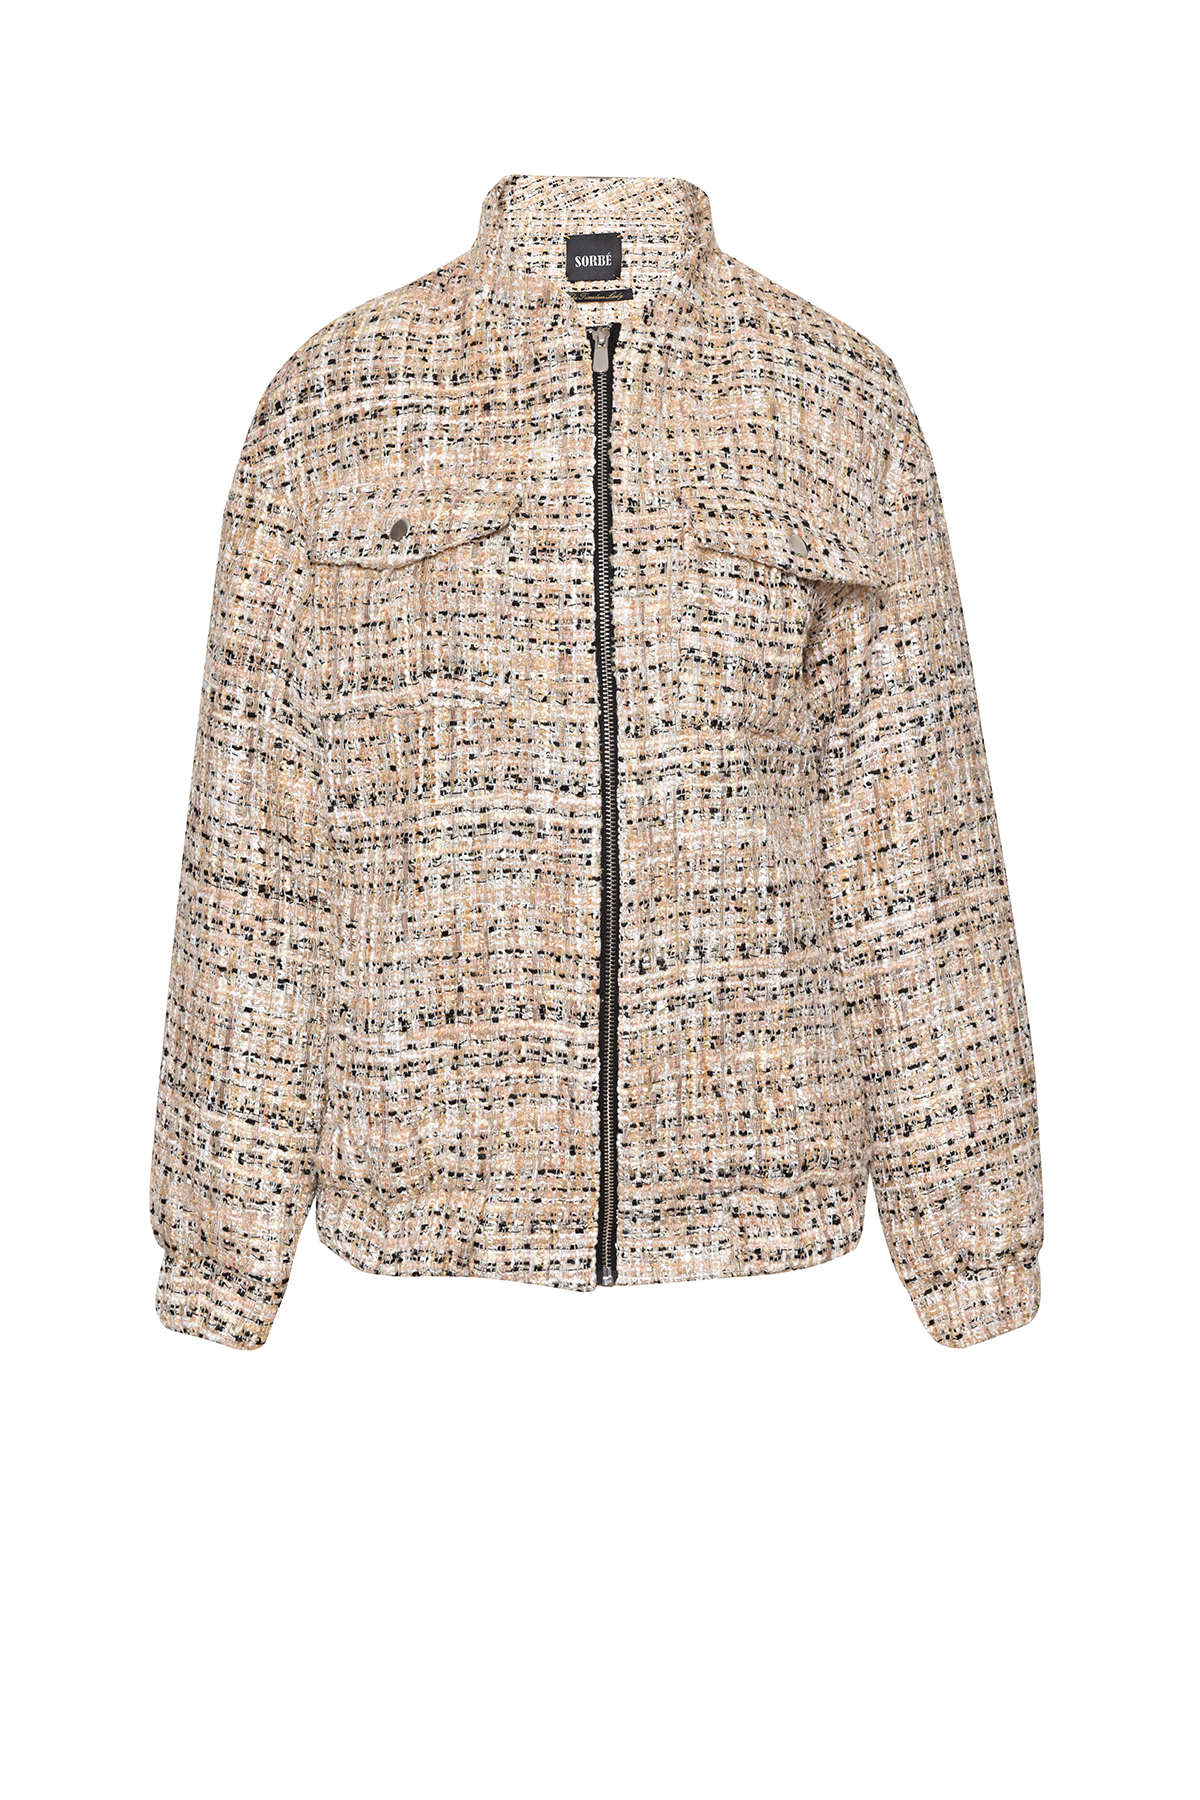 Bomber Jacket - Black Powder by Sorbé on curated-crowd.com